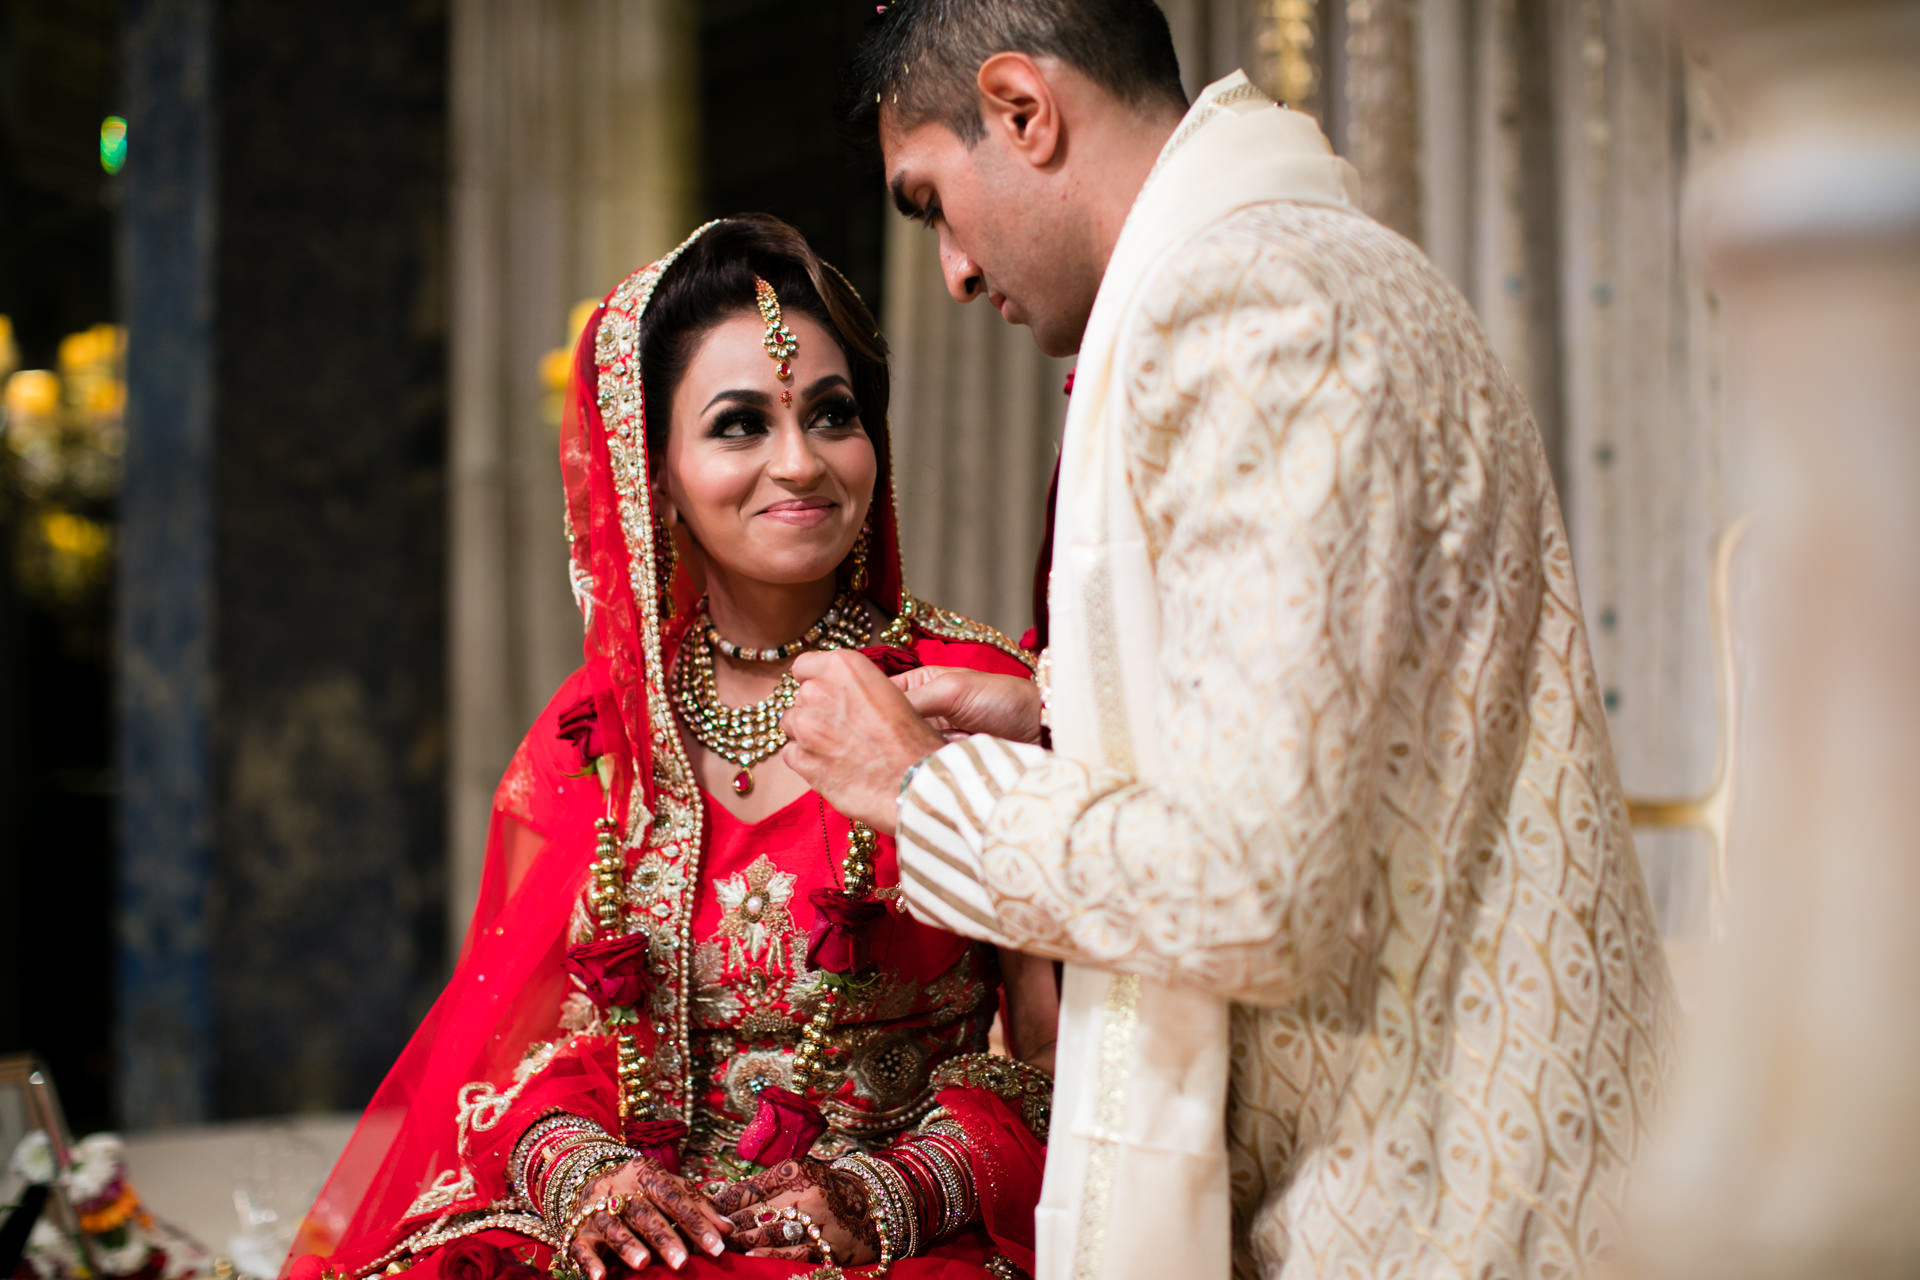 Bride smiling at groom during Indoor ceremony